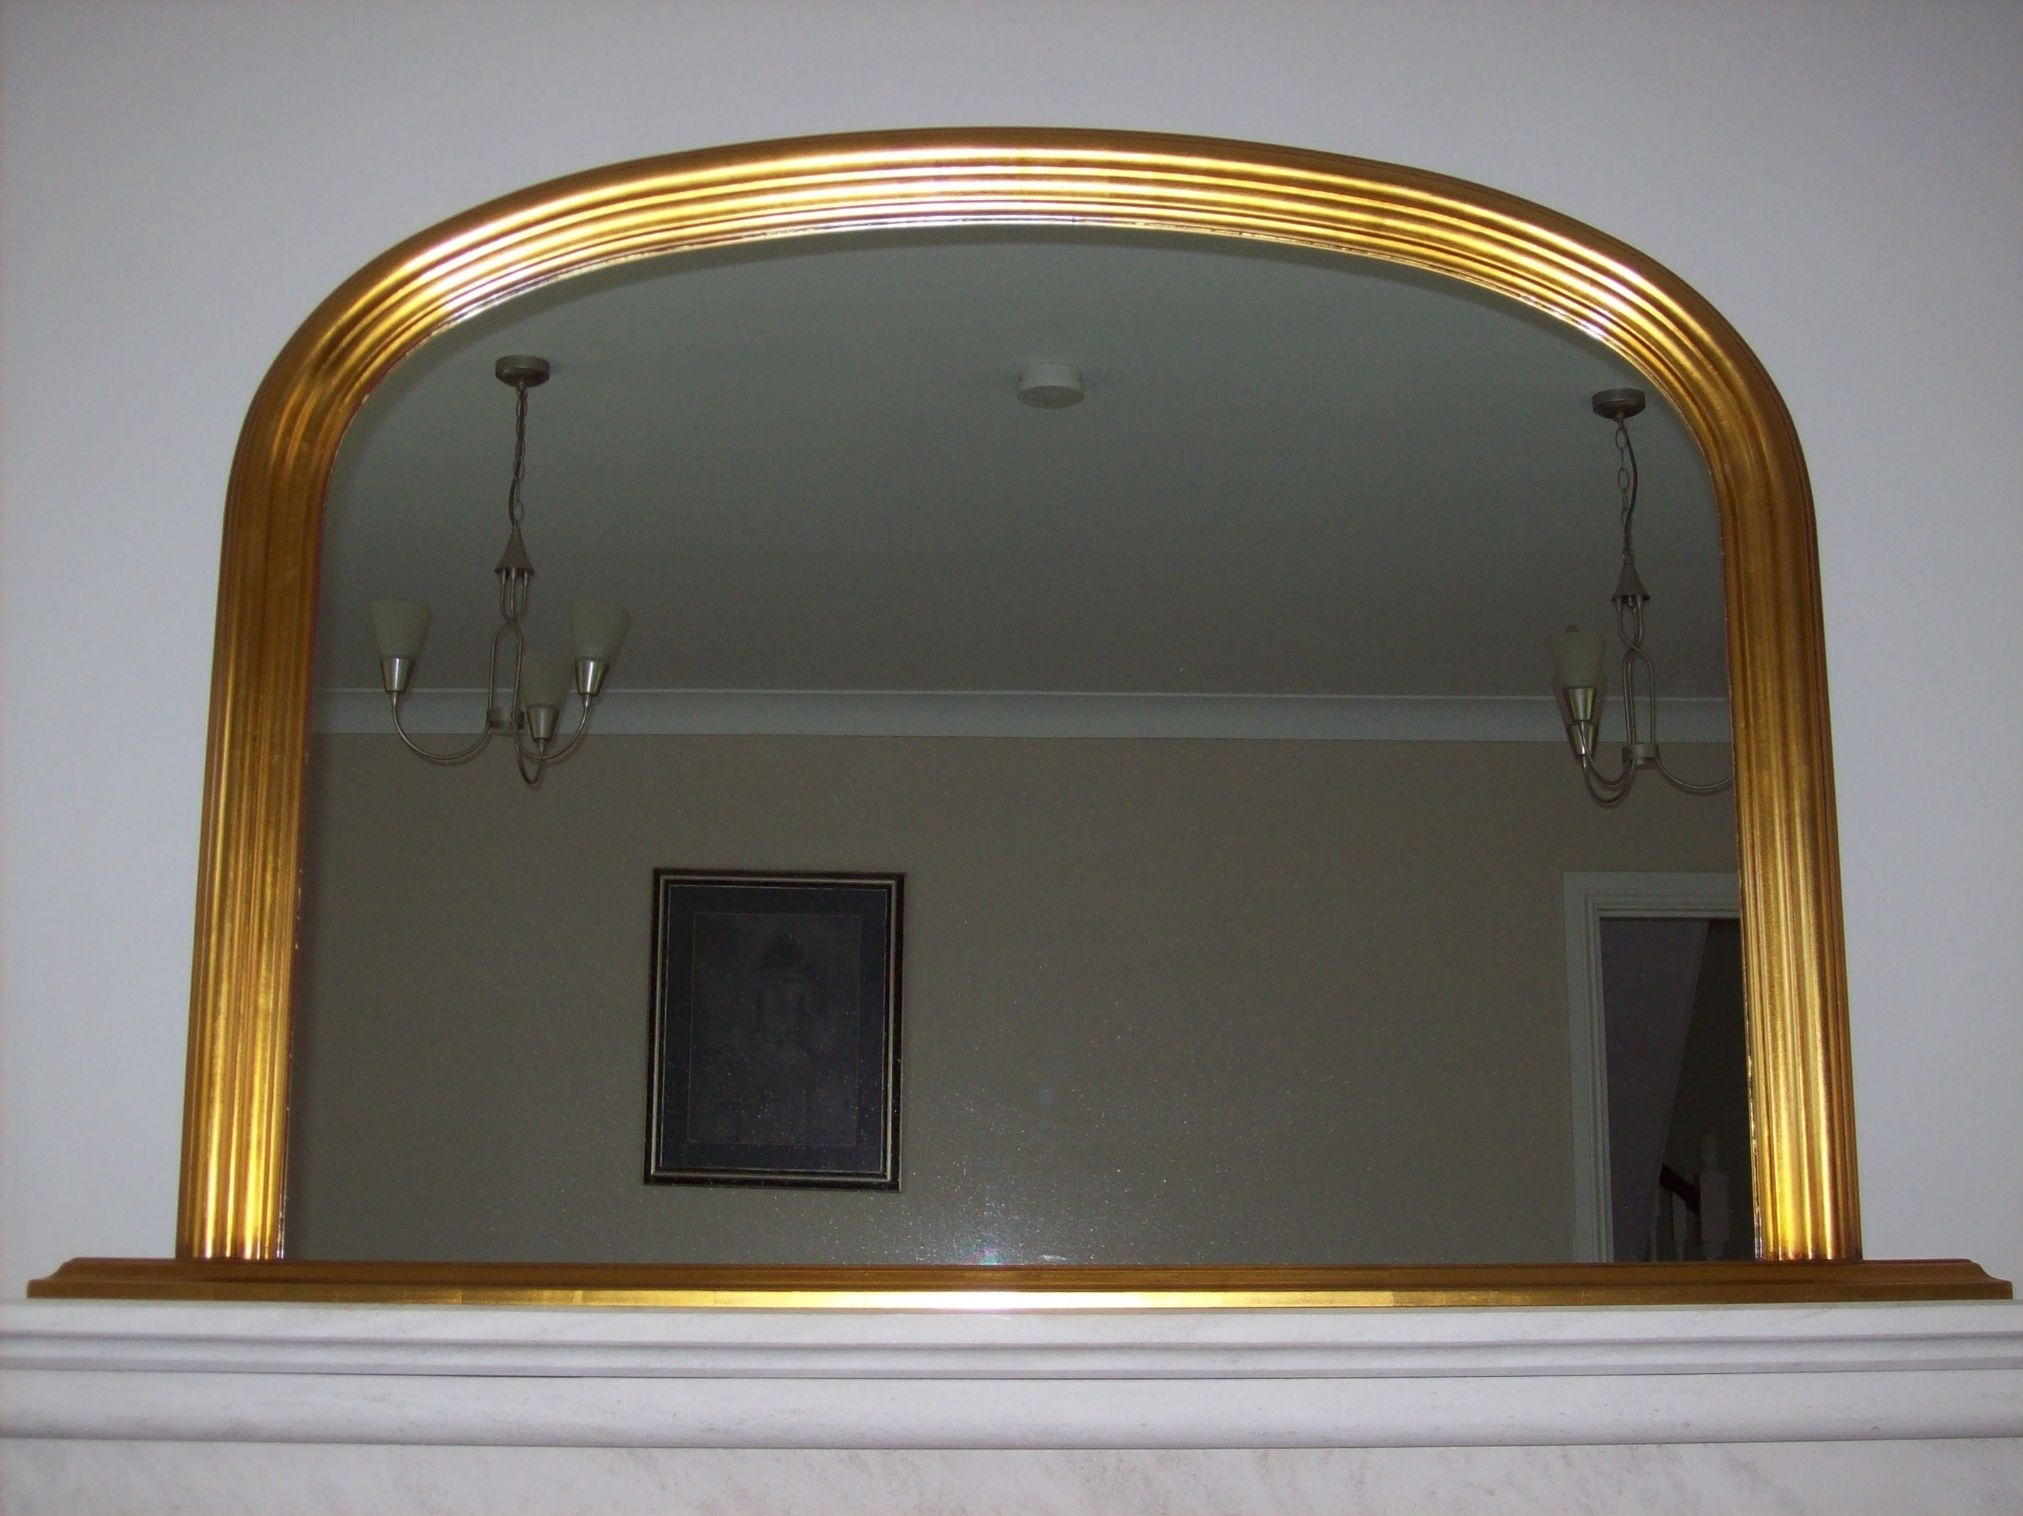 Gold Arched Overmantle Mirror Regarding Antique Overmantle Mirrors (Image 7 of 15)